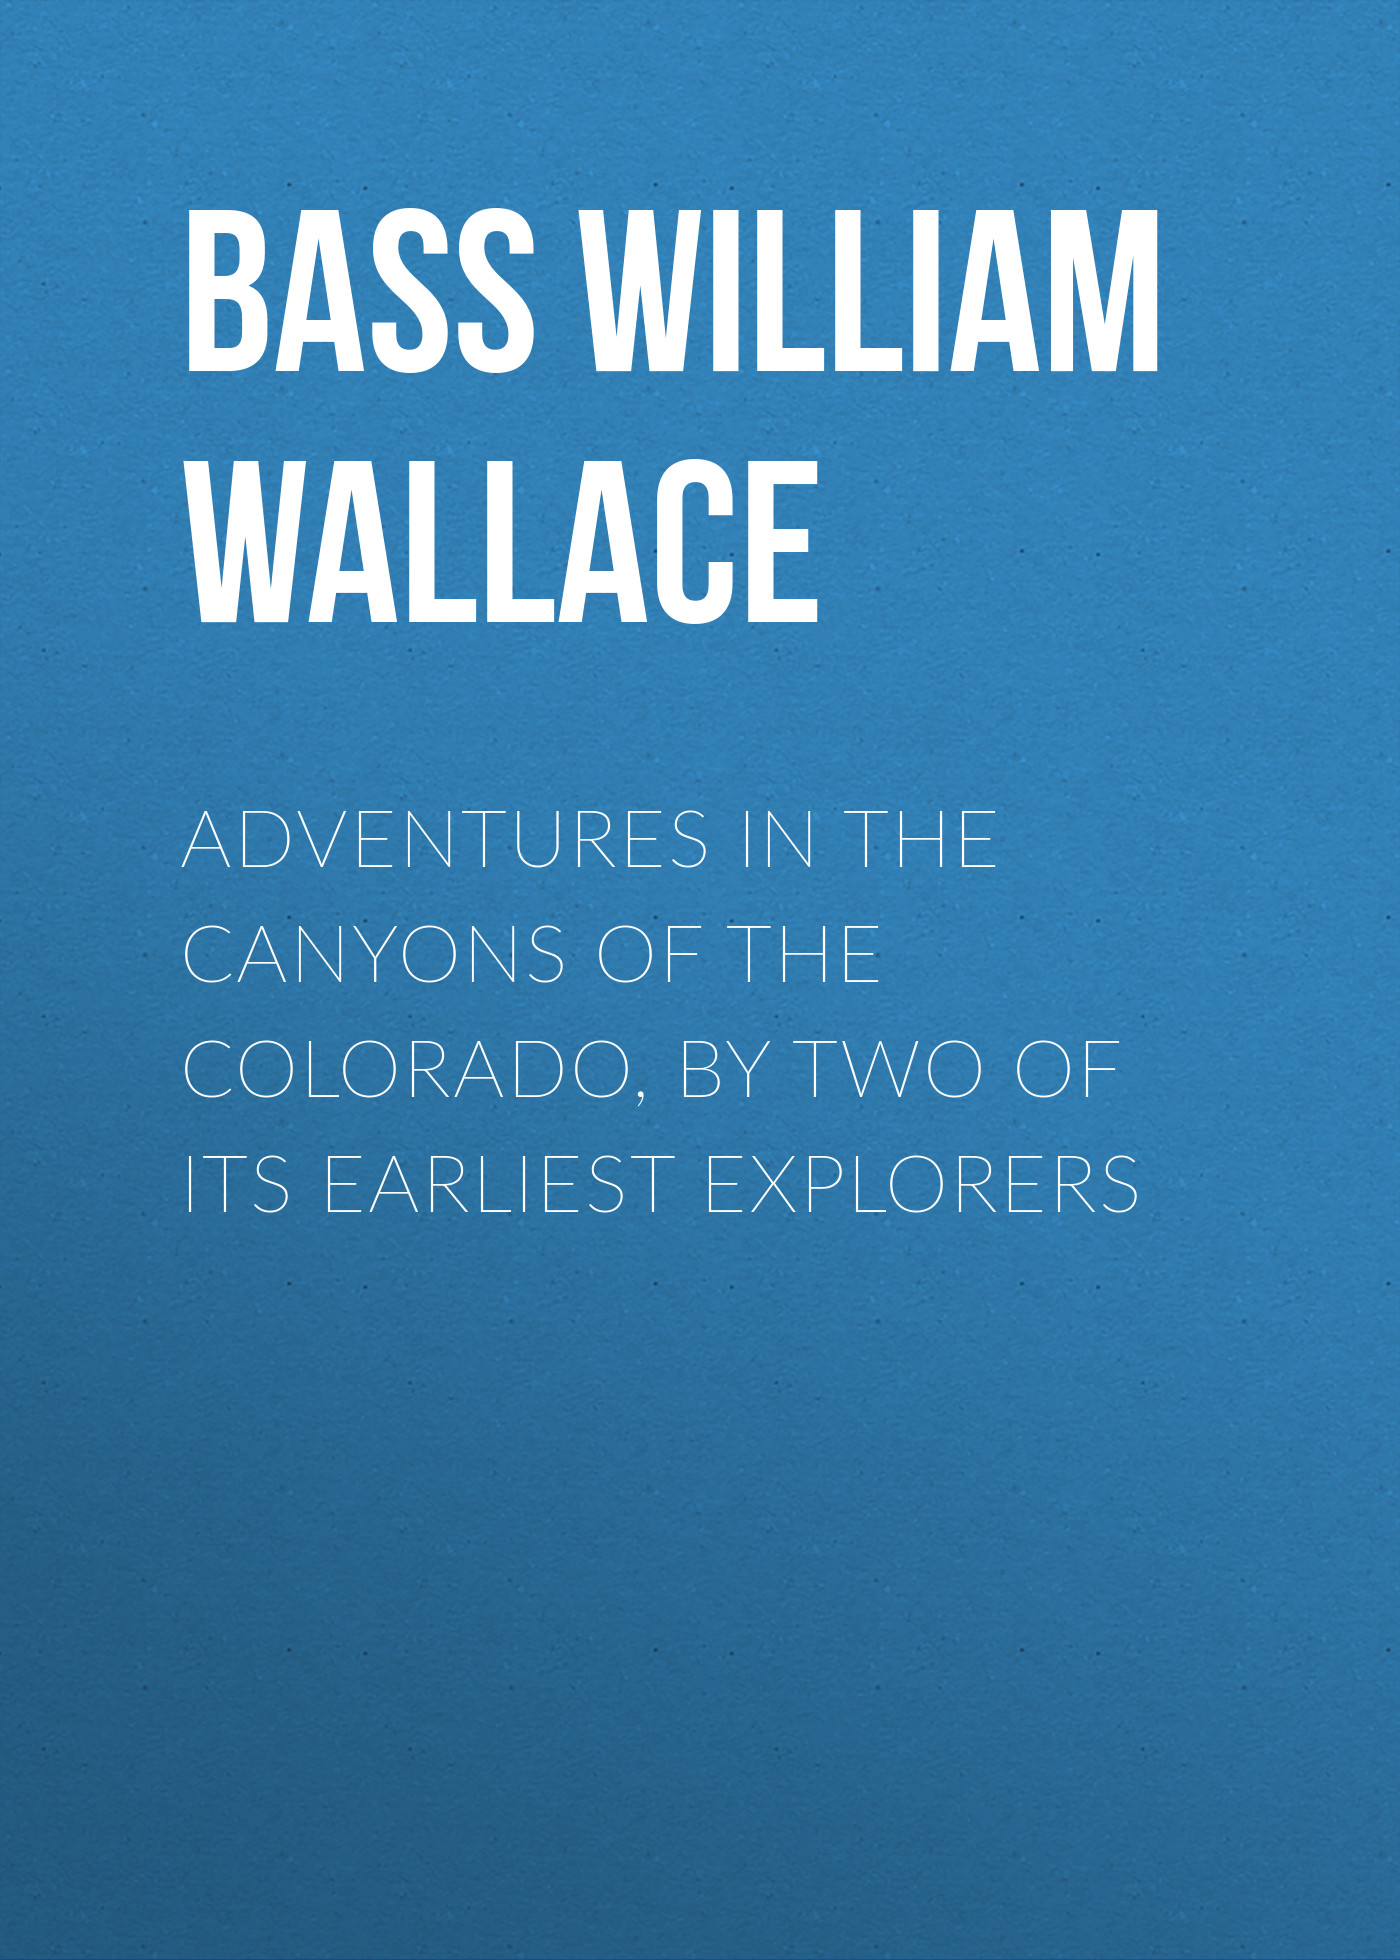 Bass William Wallace Adventures in the Canyons of the Colorado, by Two of Its Earliest Explorers teclast p80x 8 inch tablet android 9 0 daul 4g phablet sc9863a octa core 1280 800 ips 2gb ram 16gb rom tablet pc gps dual camera